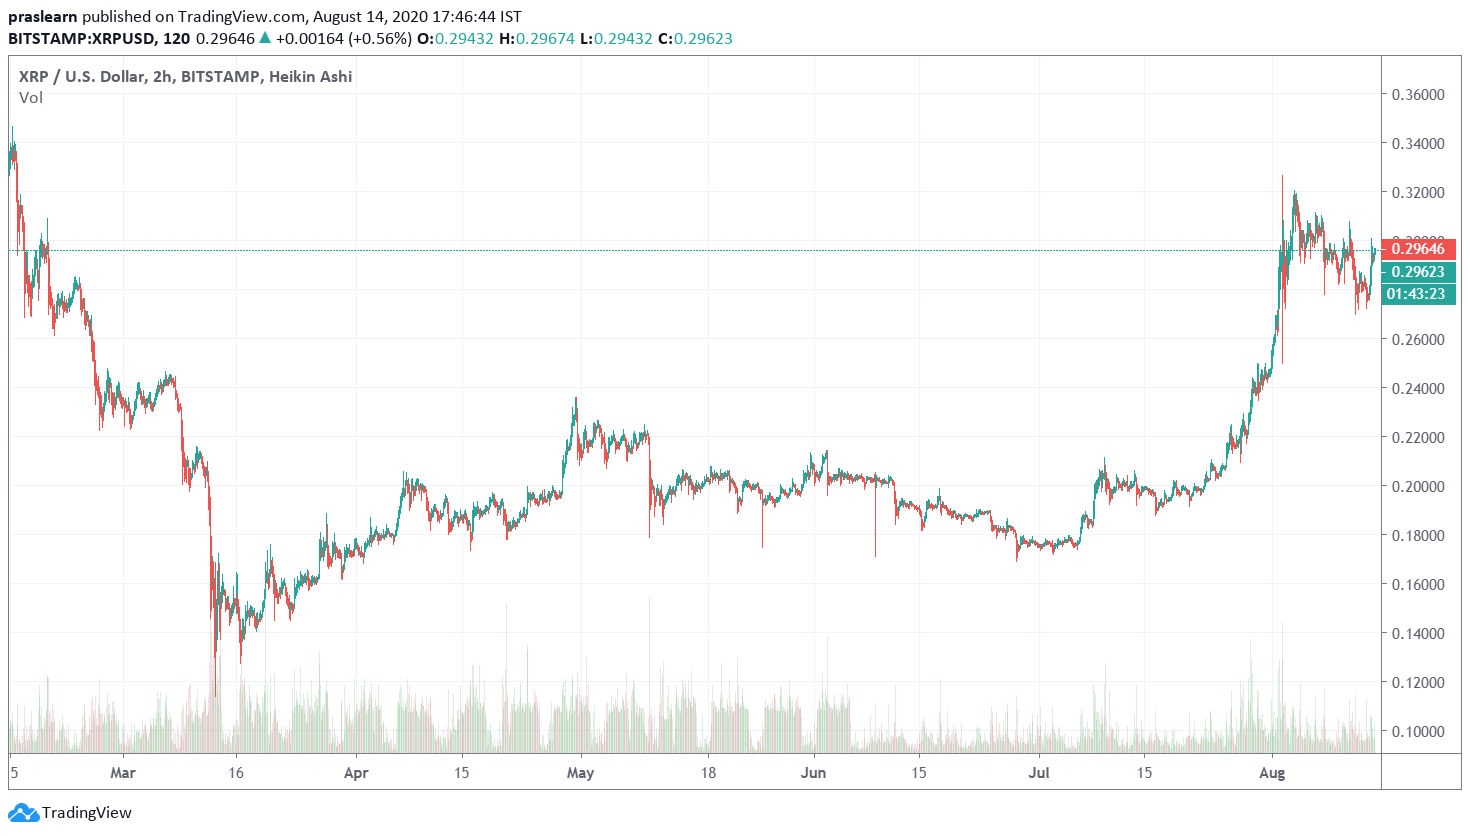 Ripple Price Analysis of 6 Months is displaying the 6 months growth,